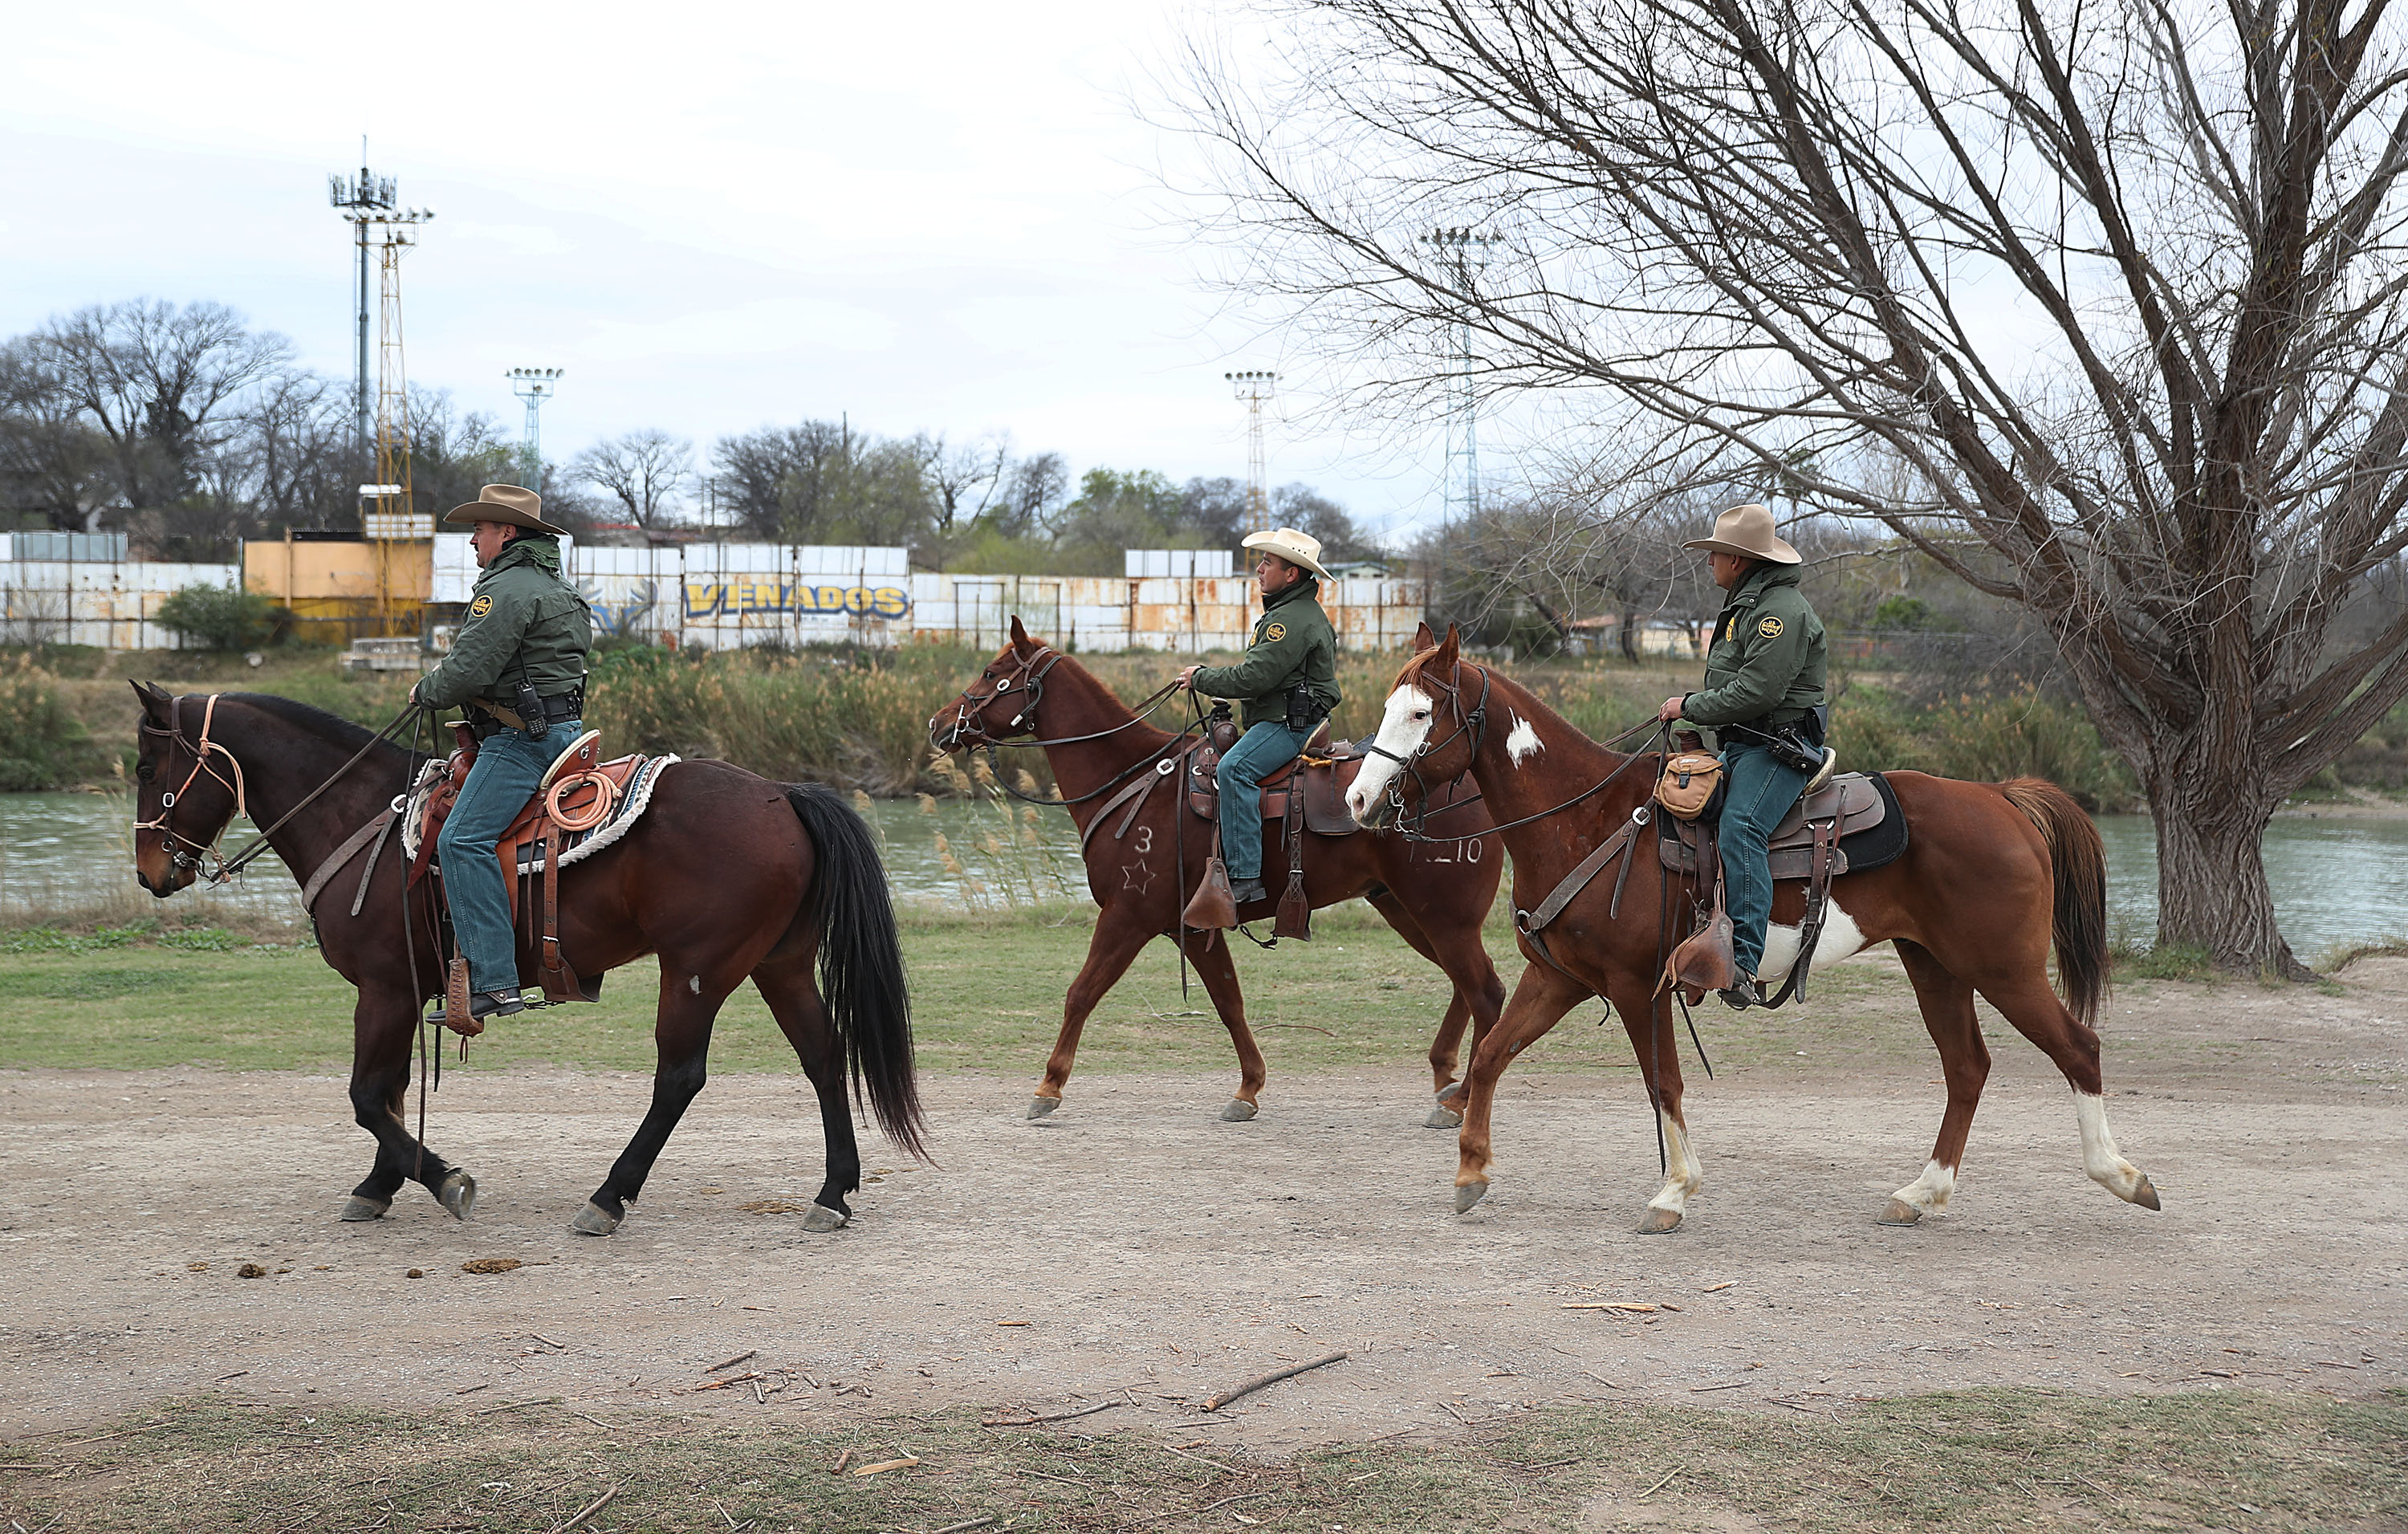 Border Patrol agents use horses to patrol along the banks of the Rio Grande which is the U.S.-Mexico border in Eagle Pass, Texas. (Photo by Joe Raedle/Getty Images)